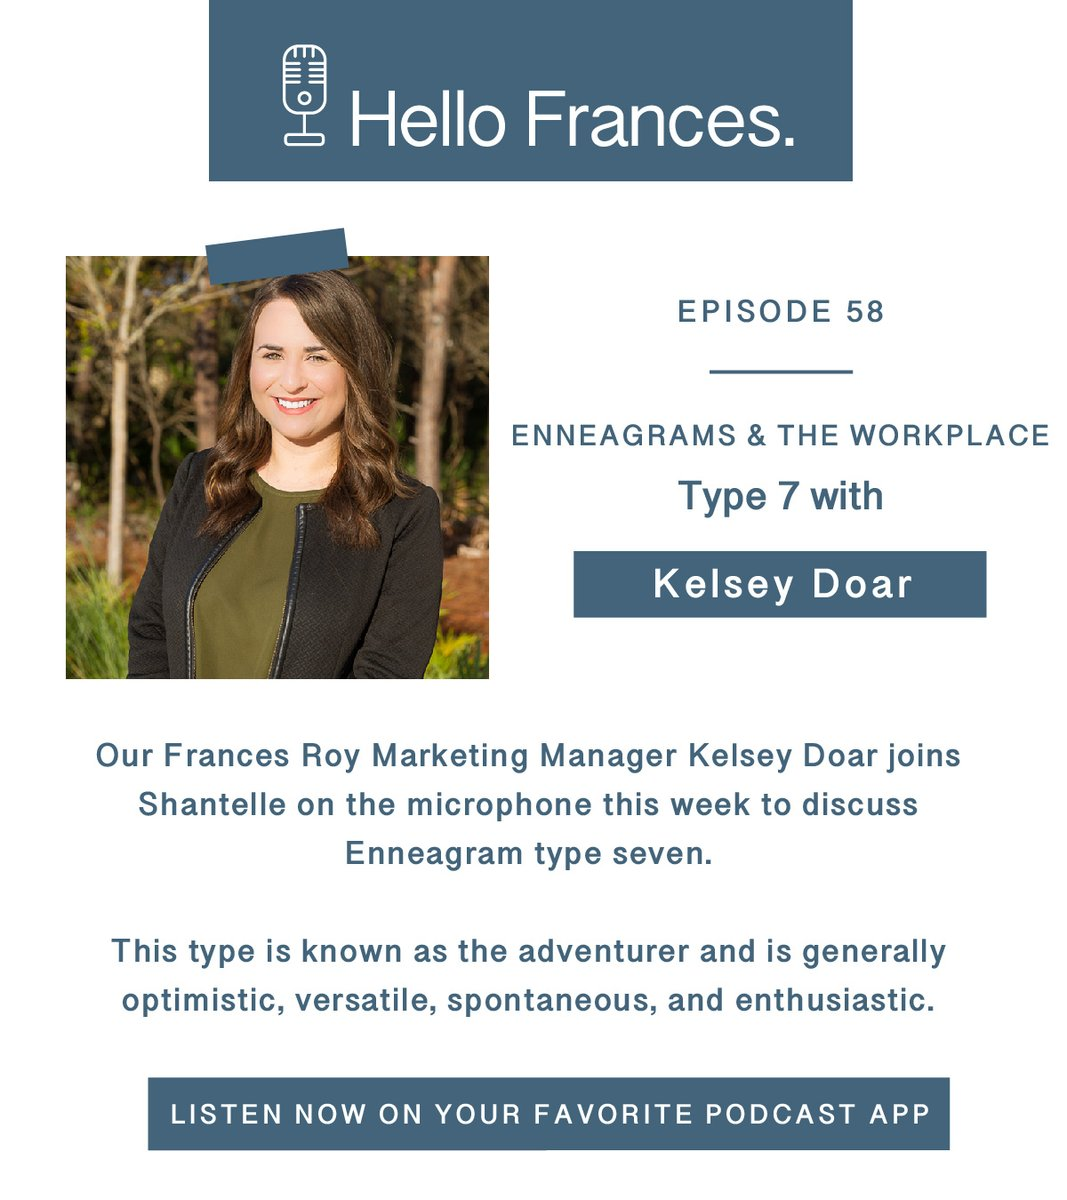 Our Frances Roy Marketing Manager Kelsey Doar joins Shantelle on the microphone this week to discuss the encouraging, adventurous #Enneagram type seven!   Do you know any type 7s? Tag them below to encourage them to listen! https://t.co/ODbDOT6JKS